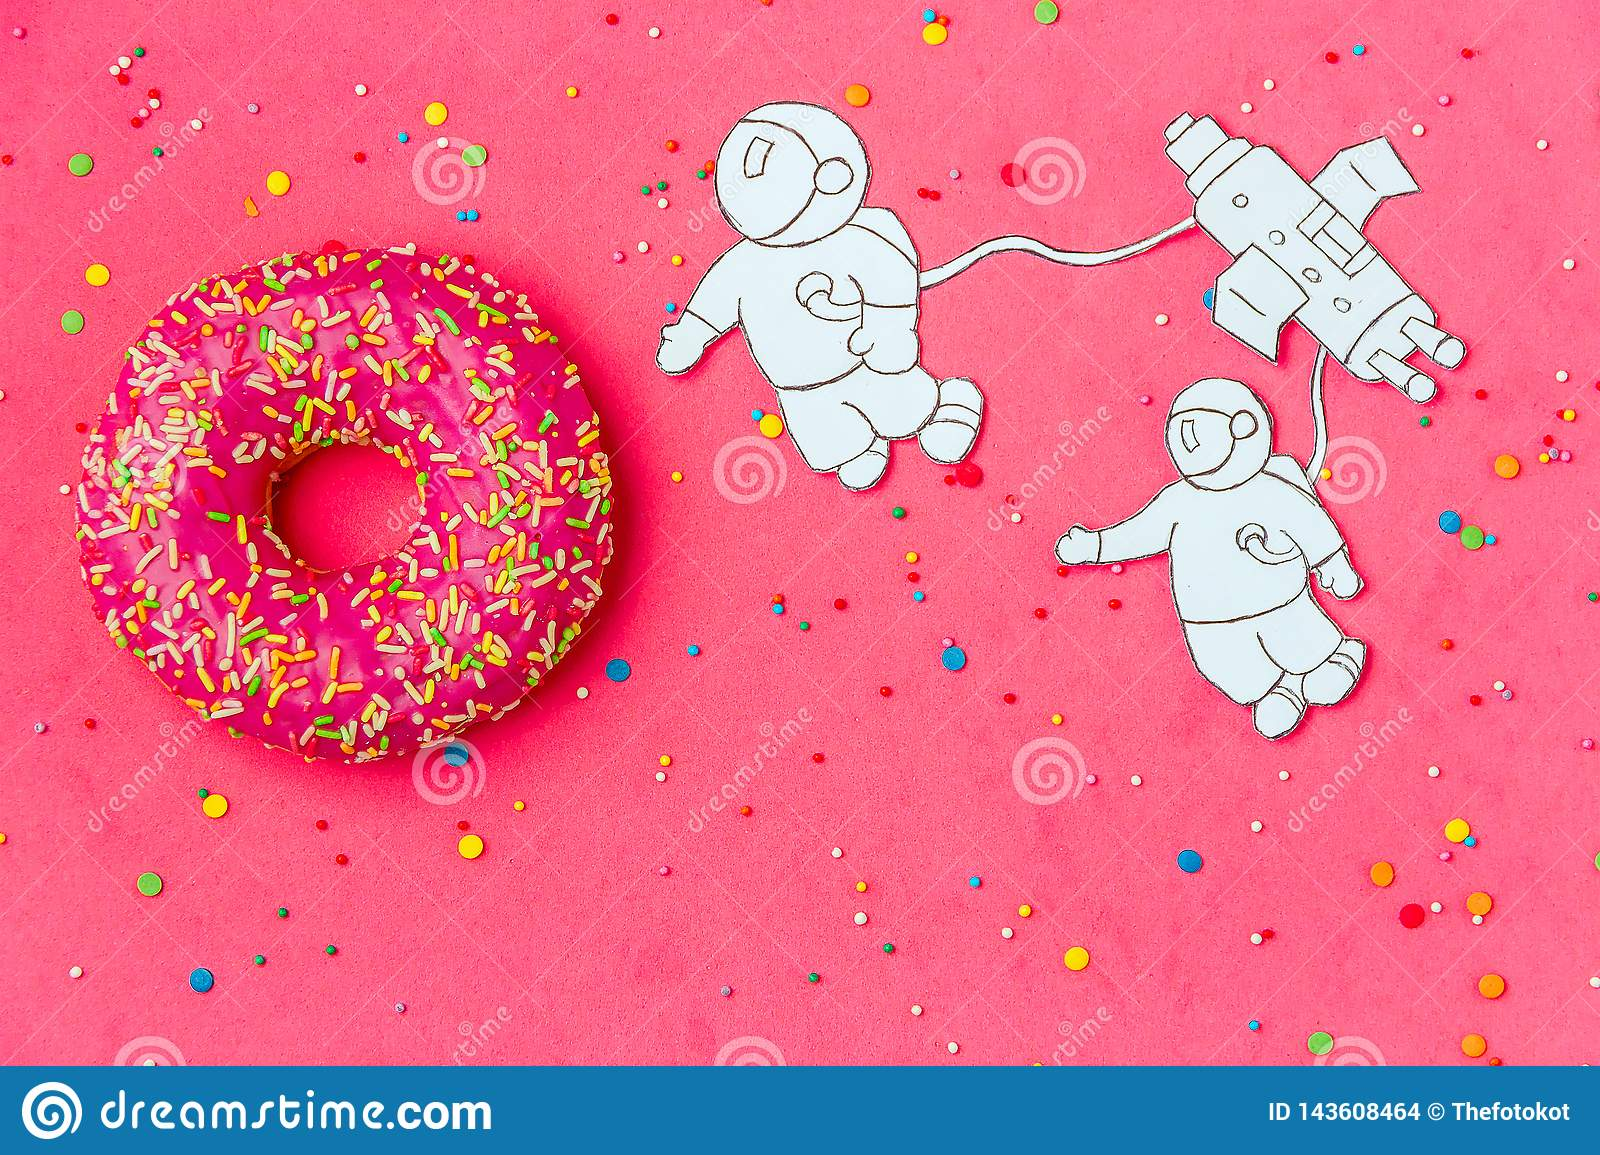 Creative Food Minimalism, Donut in Shape of Planet in Pink Sky with Astronaut, Space Ship Top View, Copy Space.